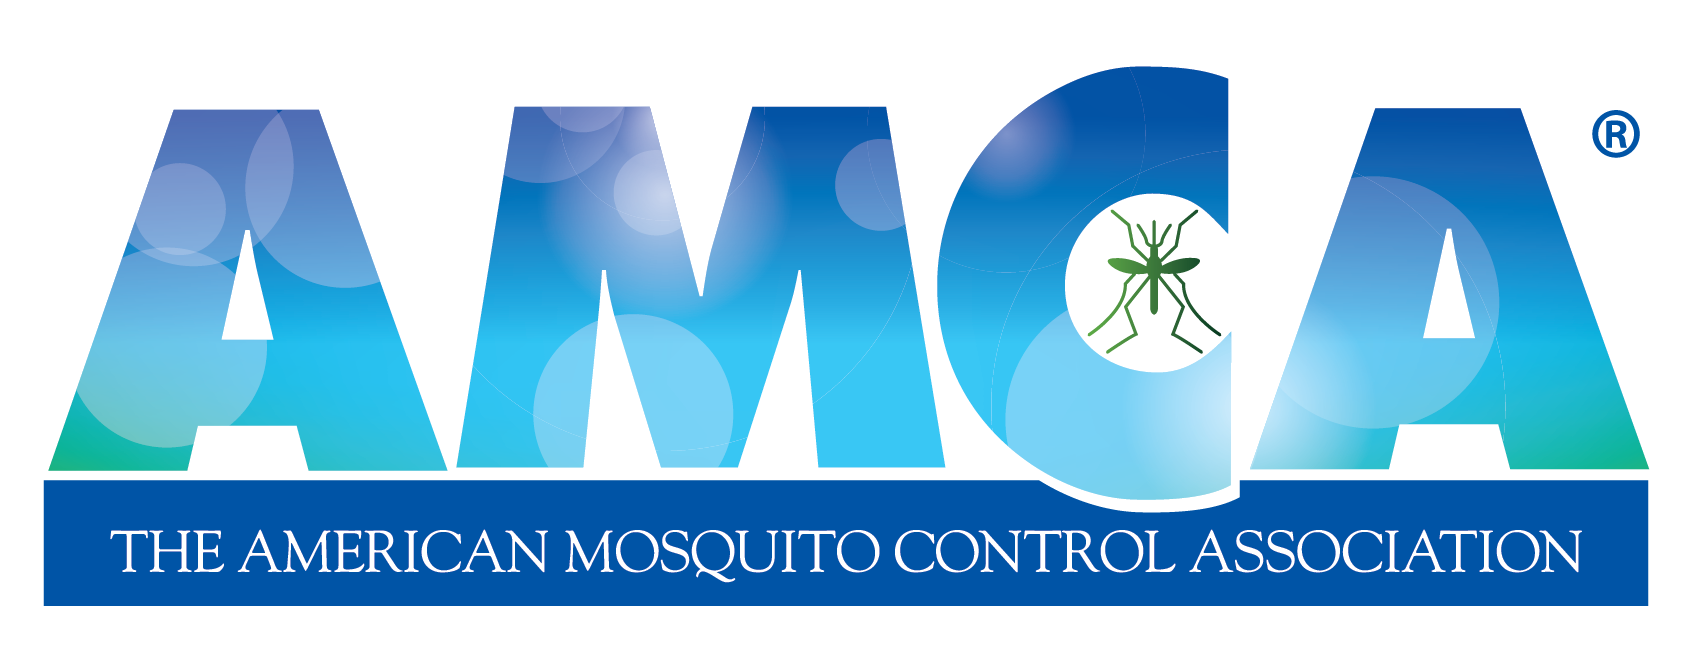 faq american mosquito control association